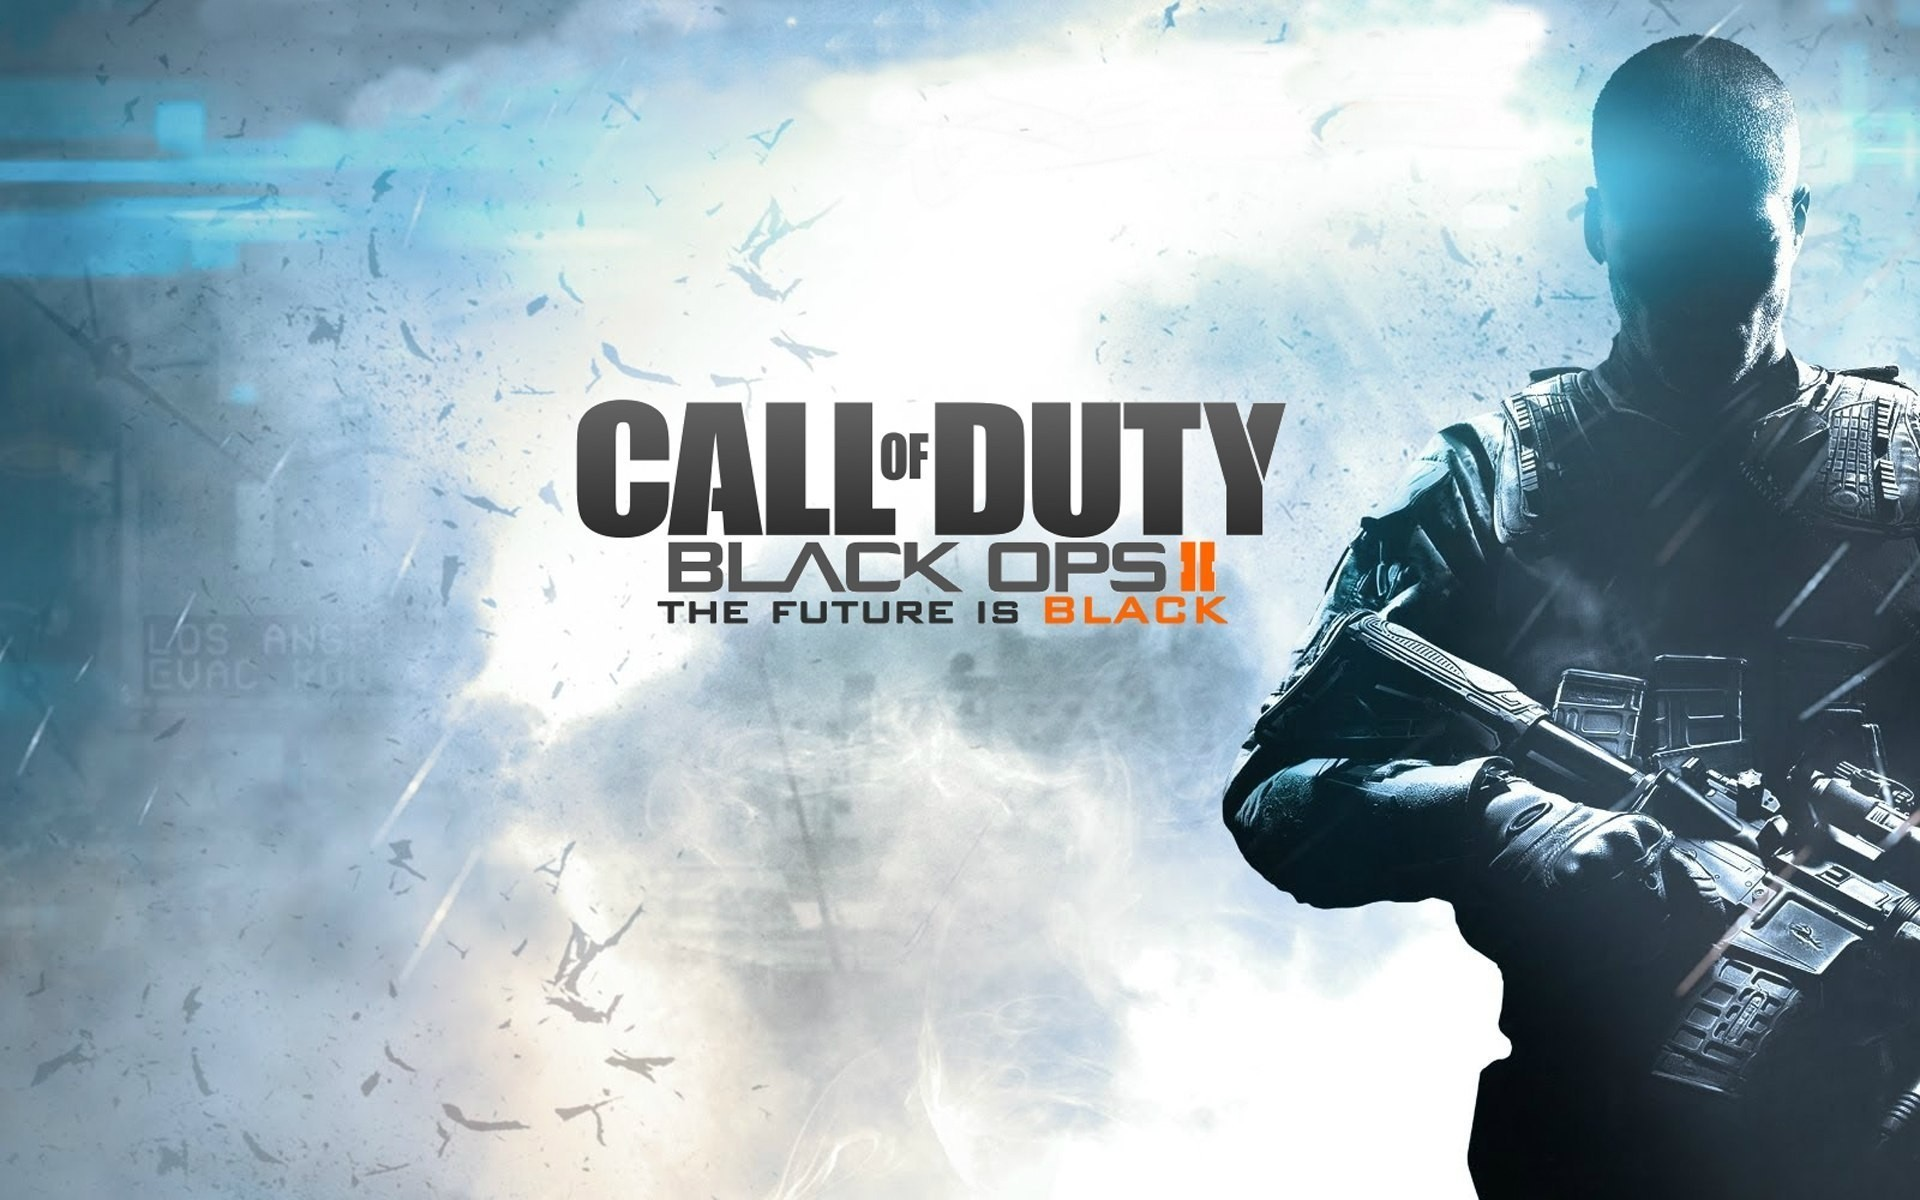 Call Of Duty Black Ops 2 Future Black Android Wallpapers